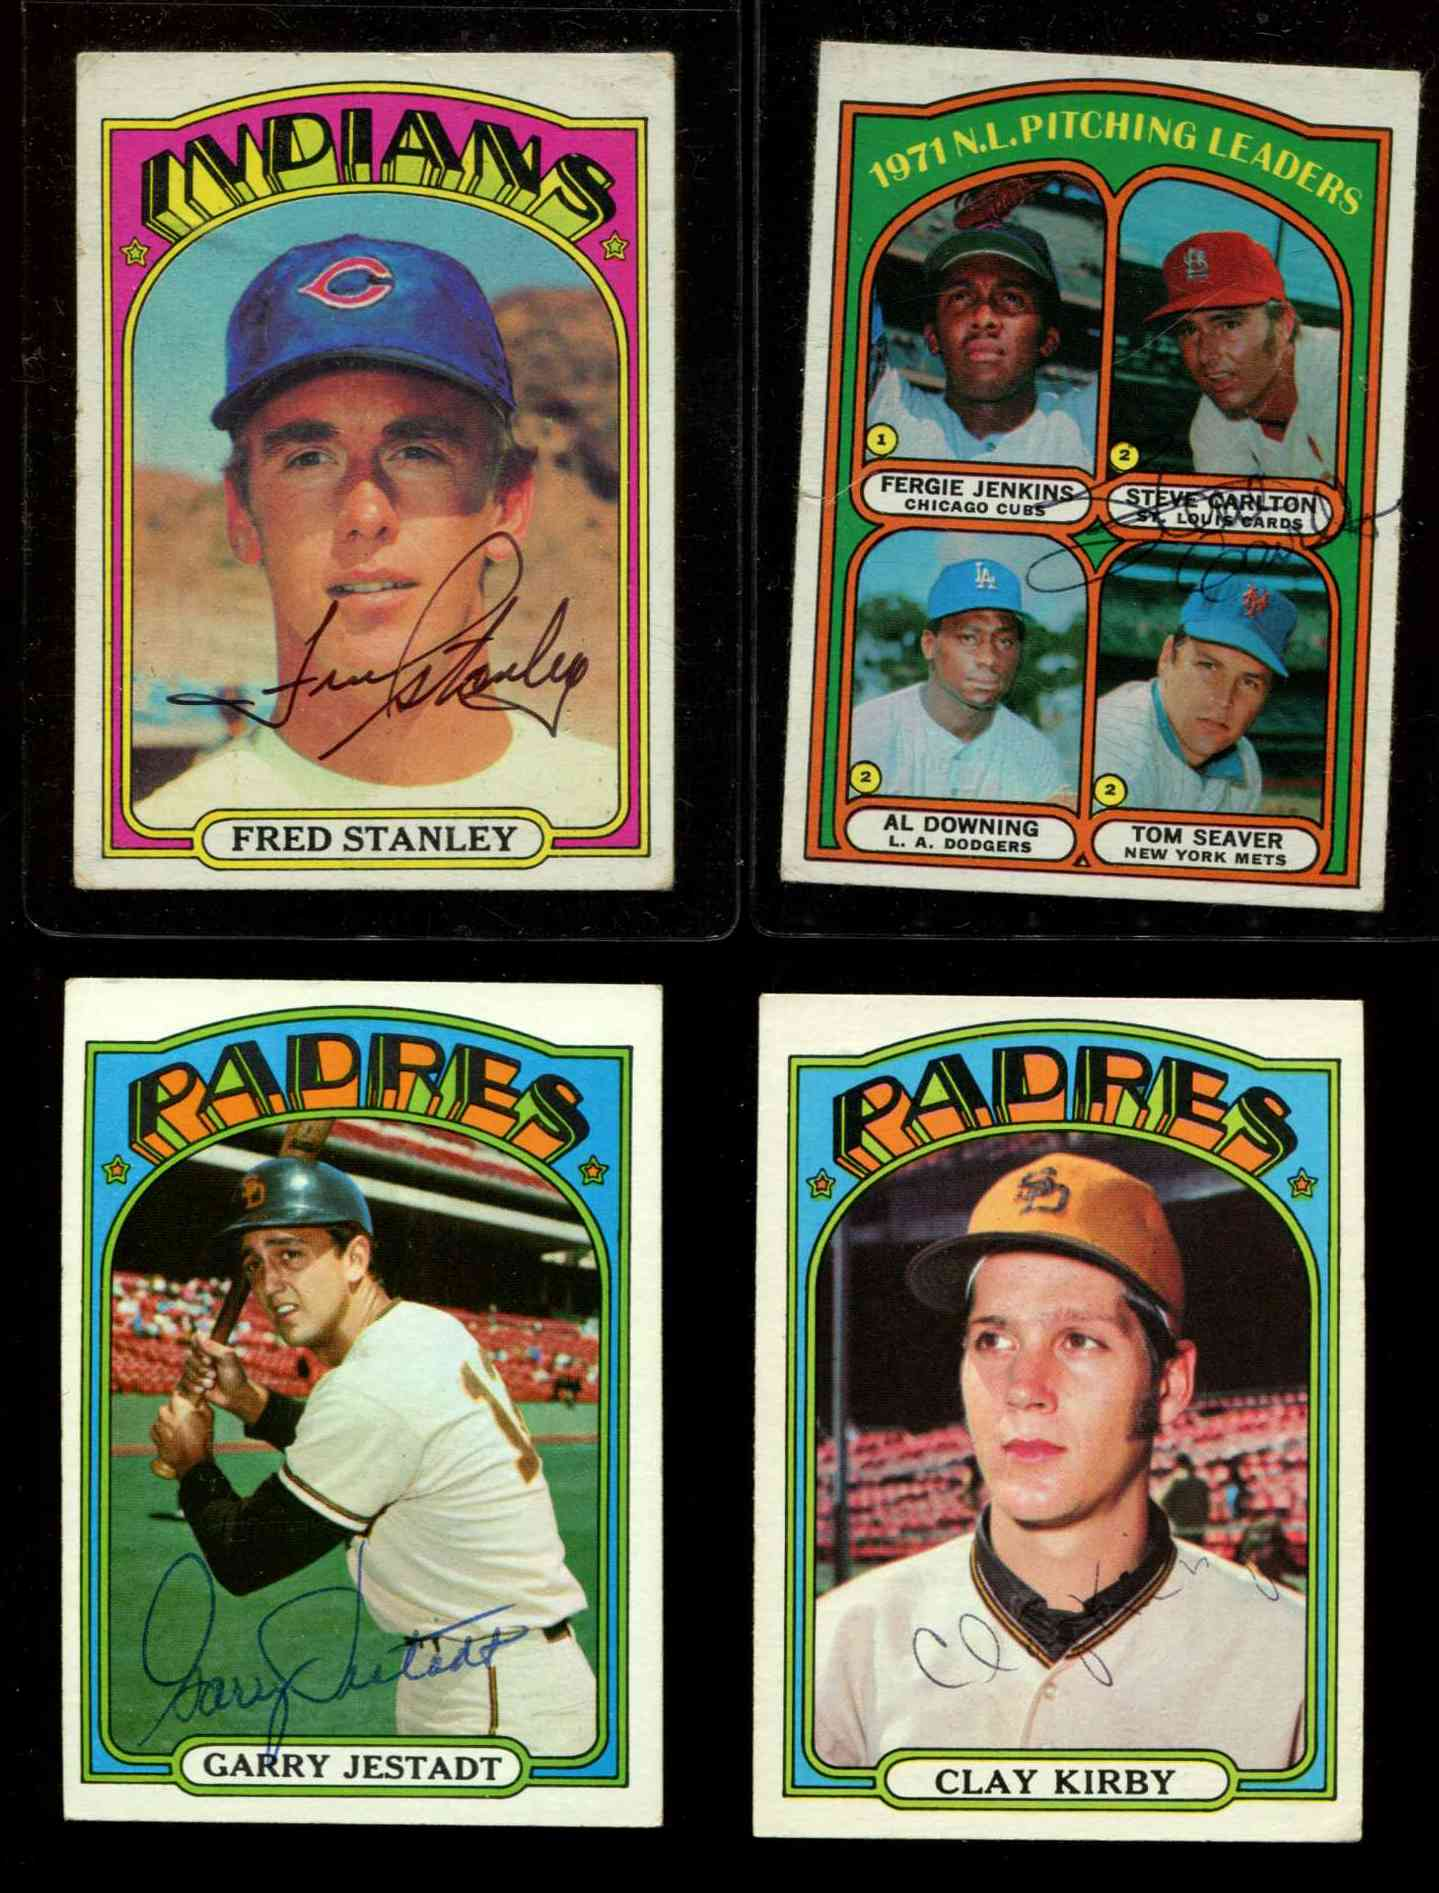 AUTOGRAPHED: 1972 Topps # 93 STEVE CARLTON NL Pitching Leaders PSA/DNA LOA Baseball cards value